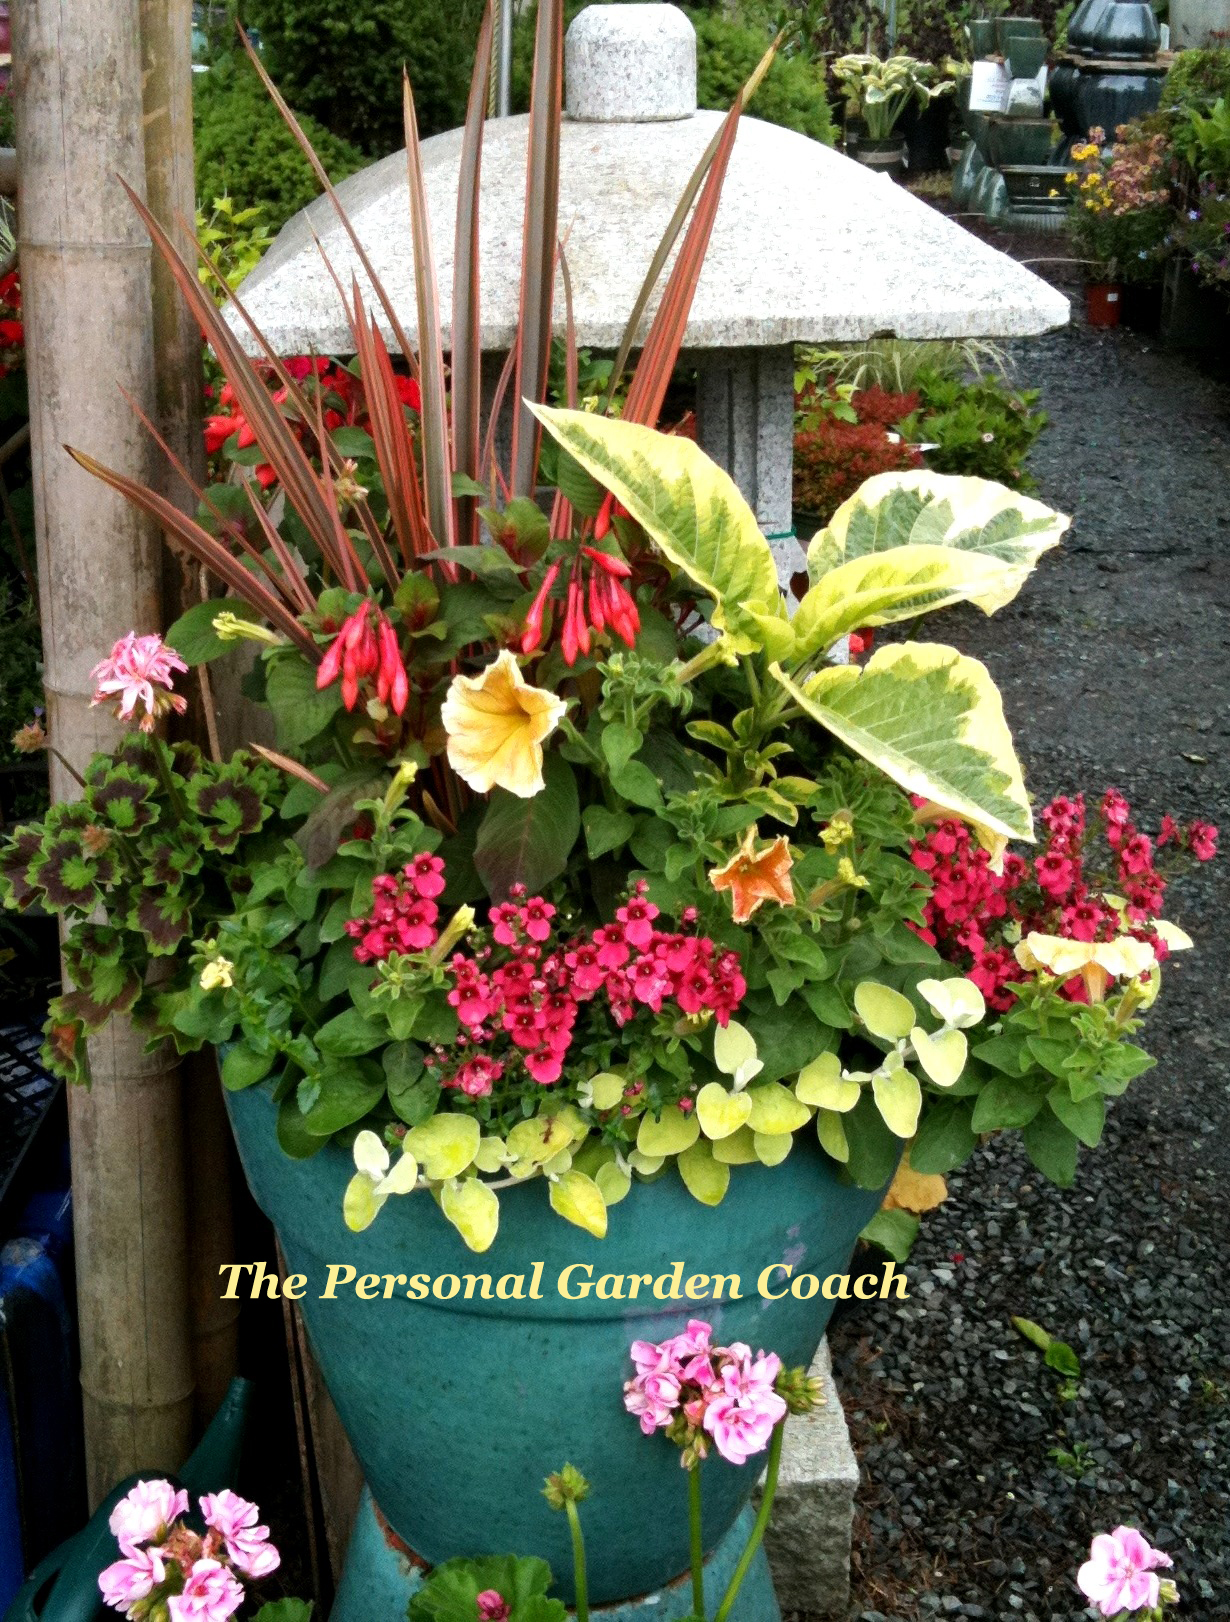 301 moved permanently - Container gardening ...